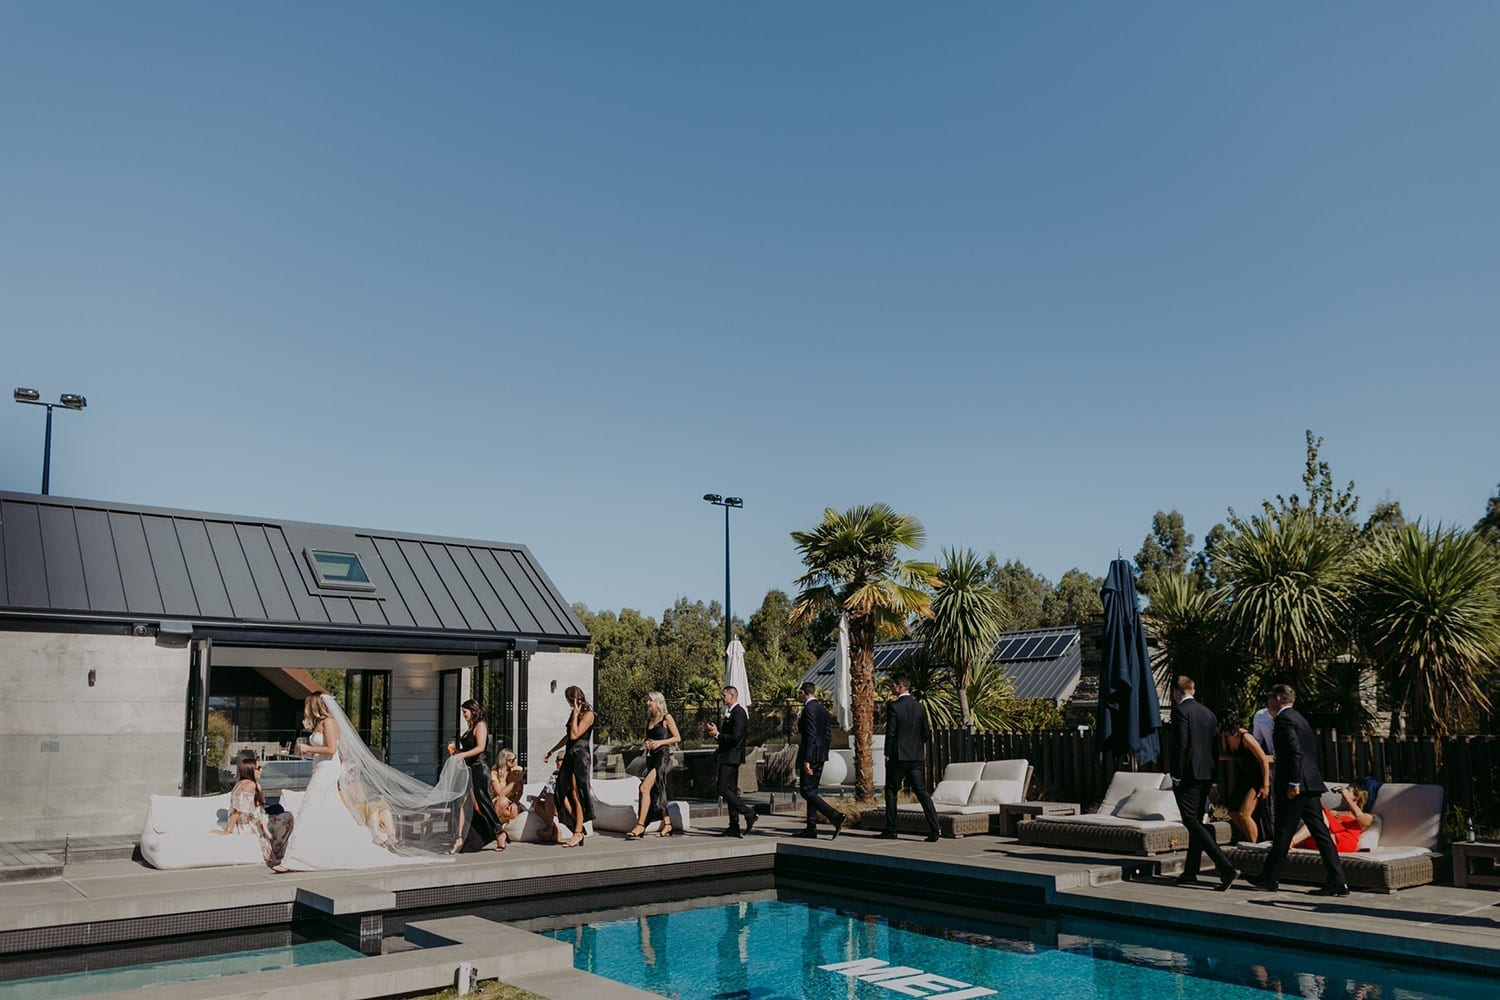 Vinka Design Features Real Weddings - bride in custom made gown, a combination of our Indi wedding dress with added beading appliqued and sewn by hand, over the top of a nude semi sheer base. With guests outdoors by pool